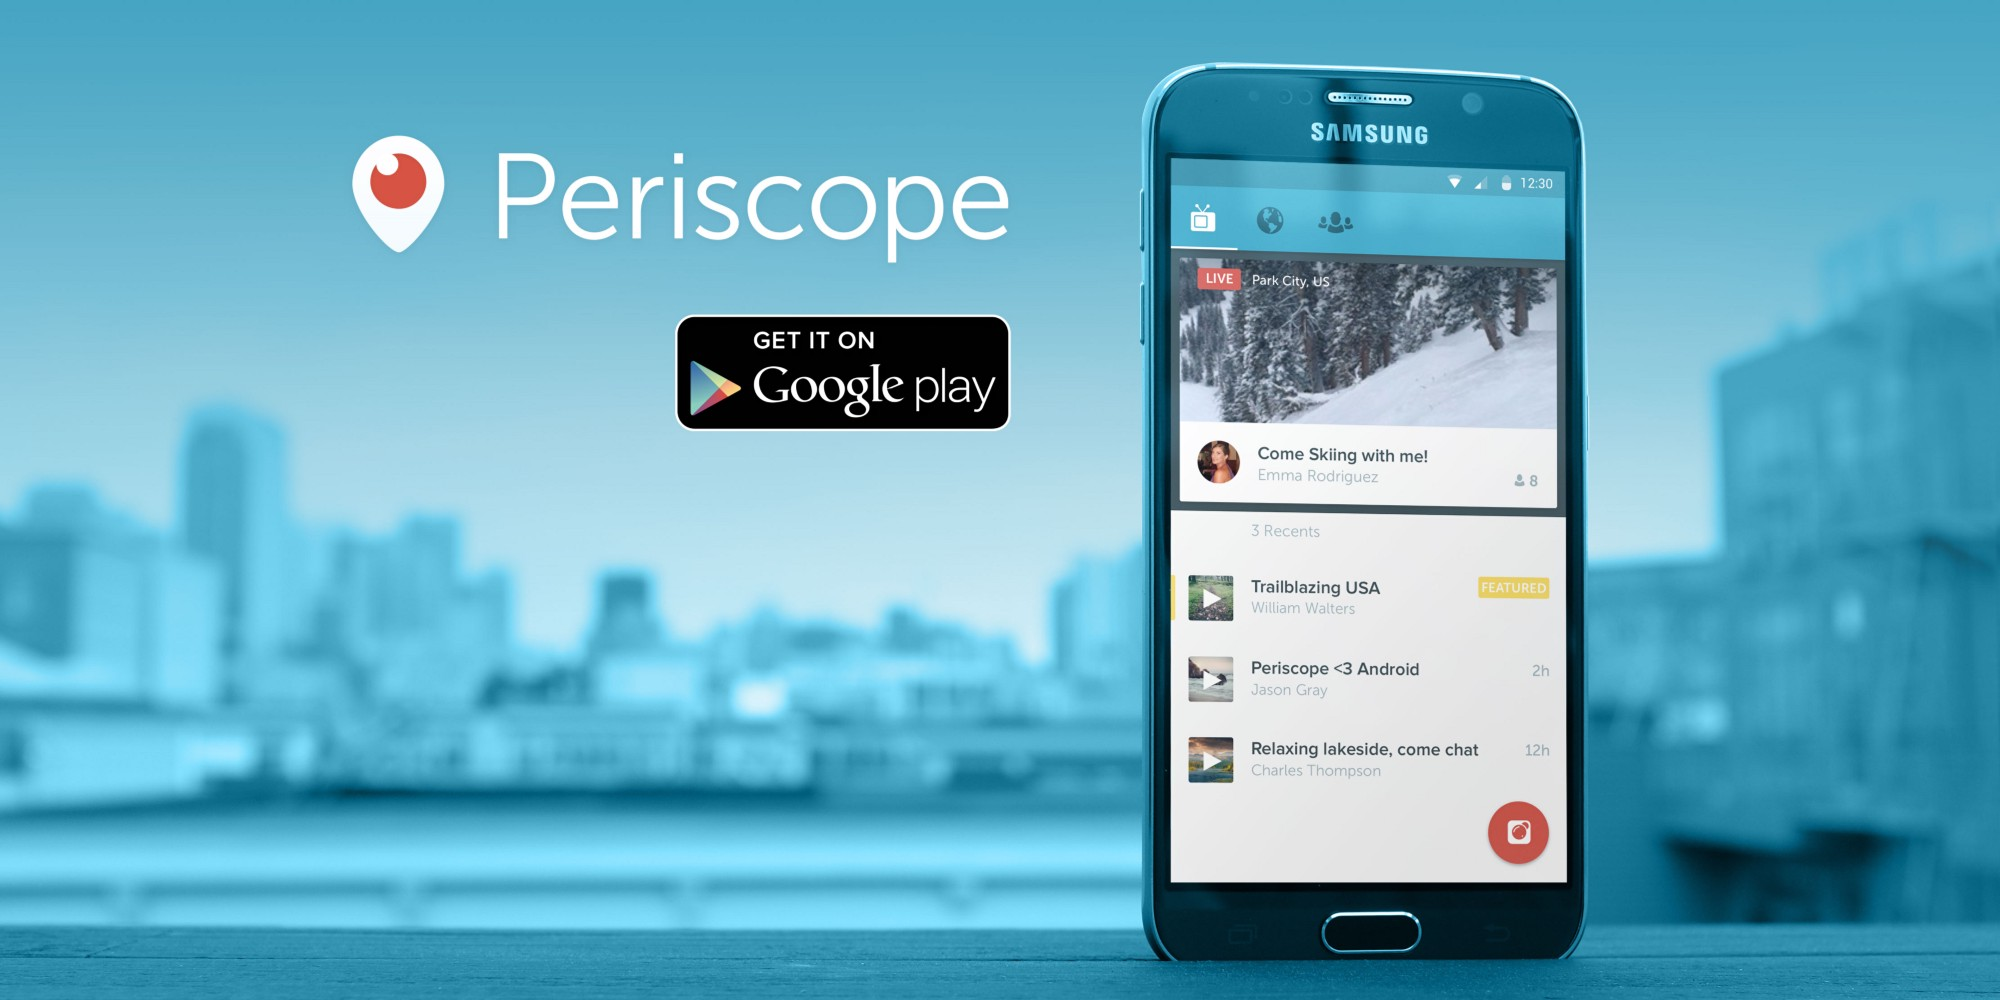 Twitter releases Periscope for Android